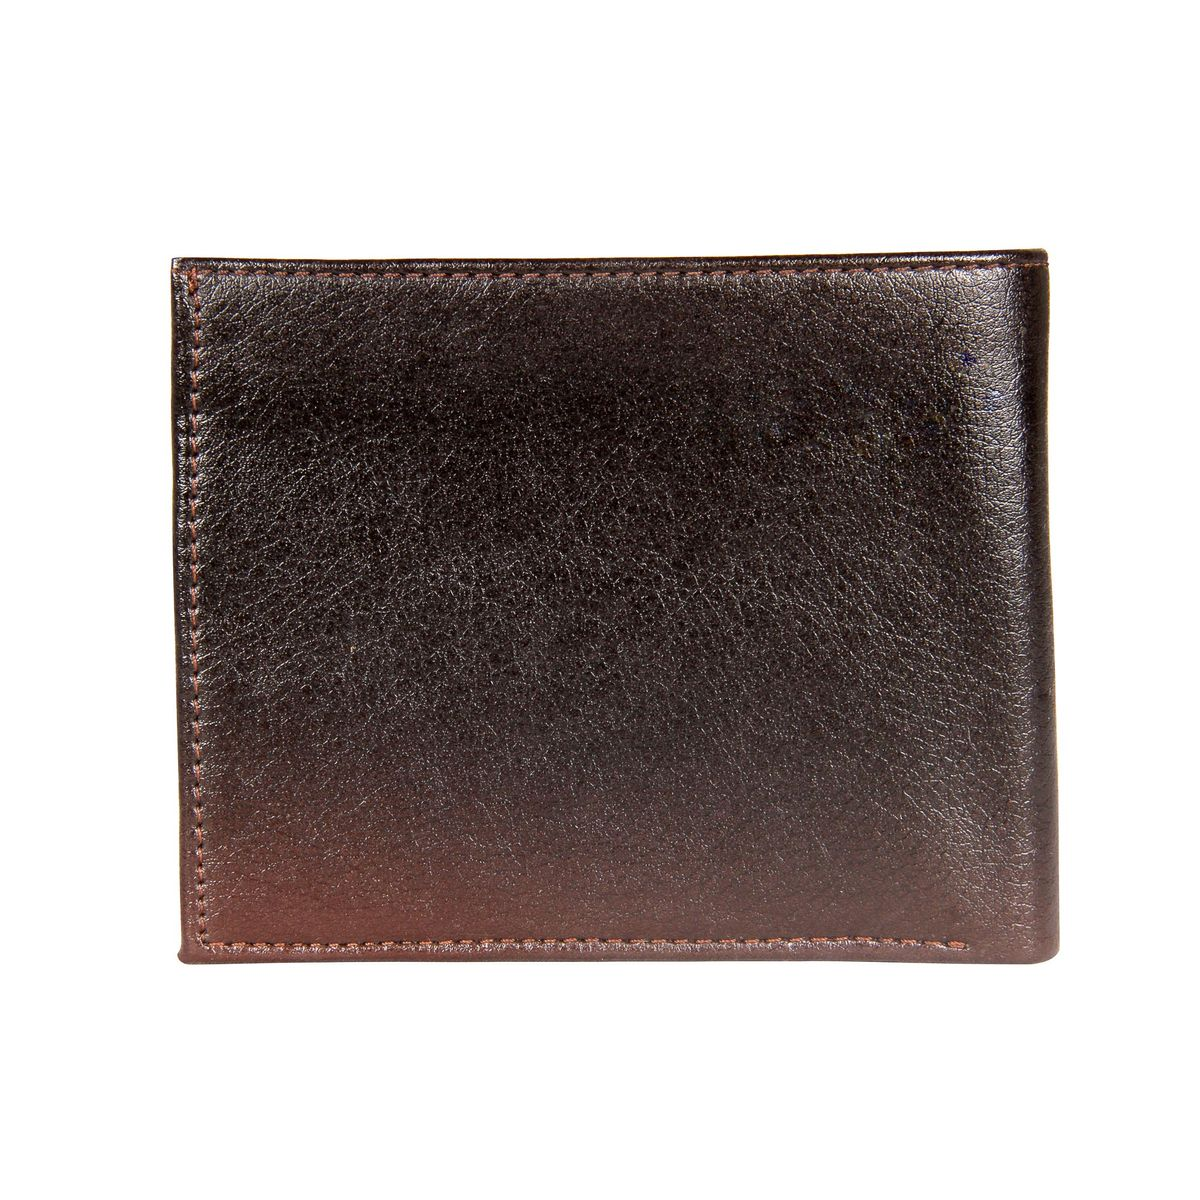 Harp Harp BROWN Color Leather Material Wallets